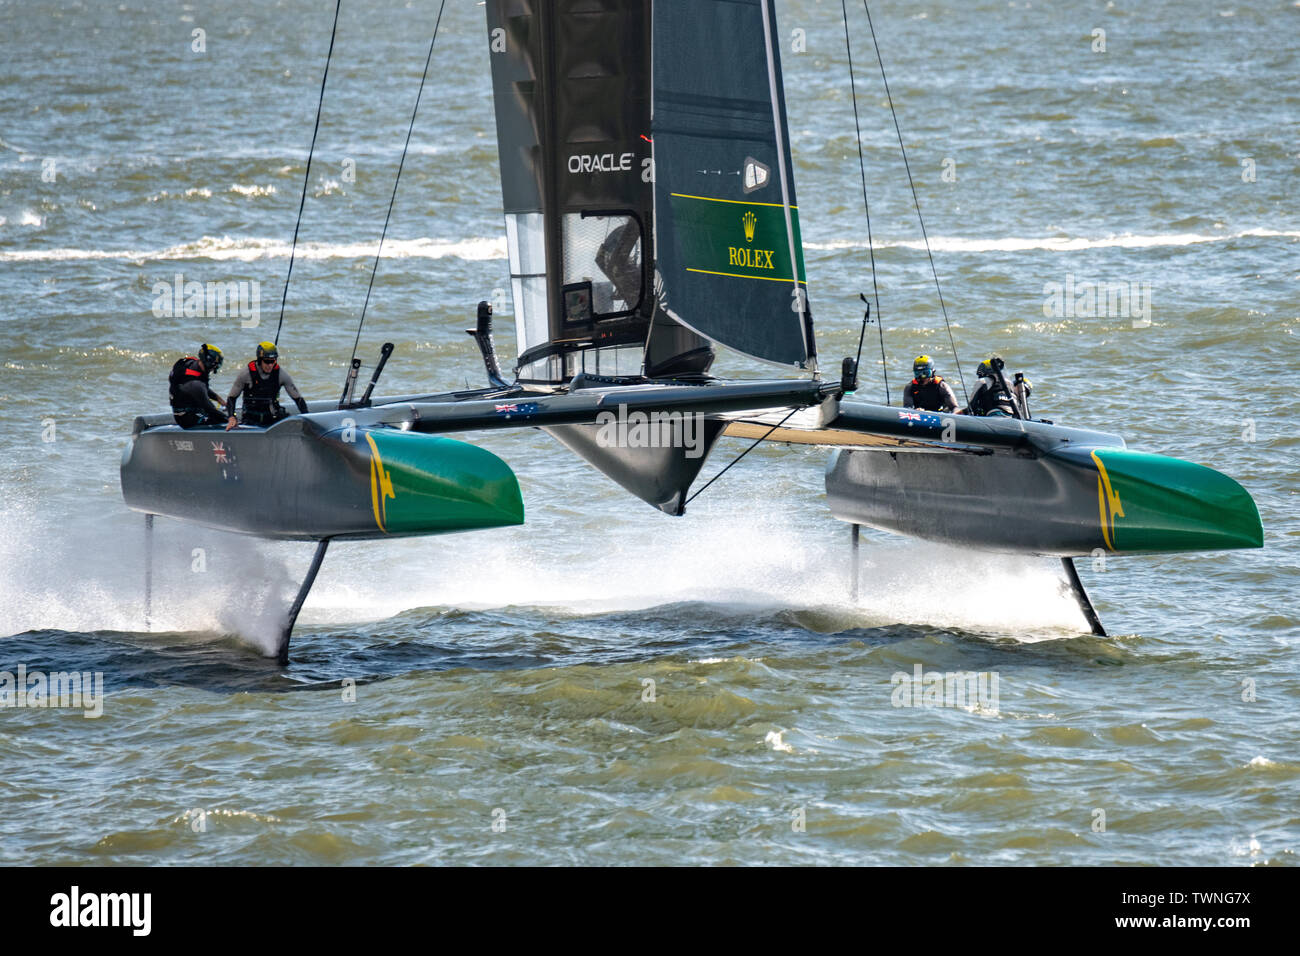 New York, USA,  21 June 2019.  Australia Team SailGP F50 catamaran sails in the Hudson river before the first race of day one of the SailGP event in New York City.   Credit: Enrique Shore/Alamy Live News Stock Photo